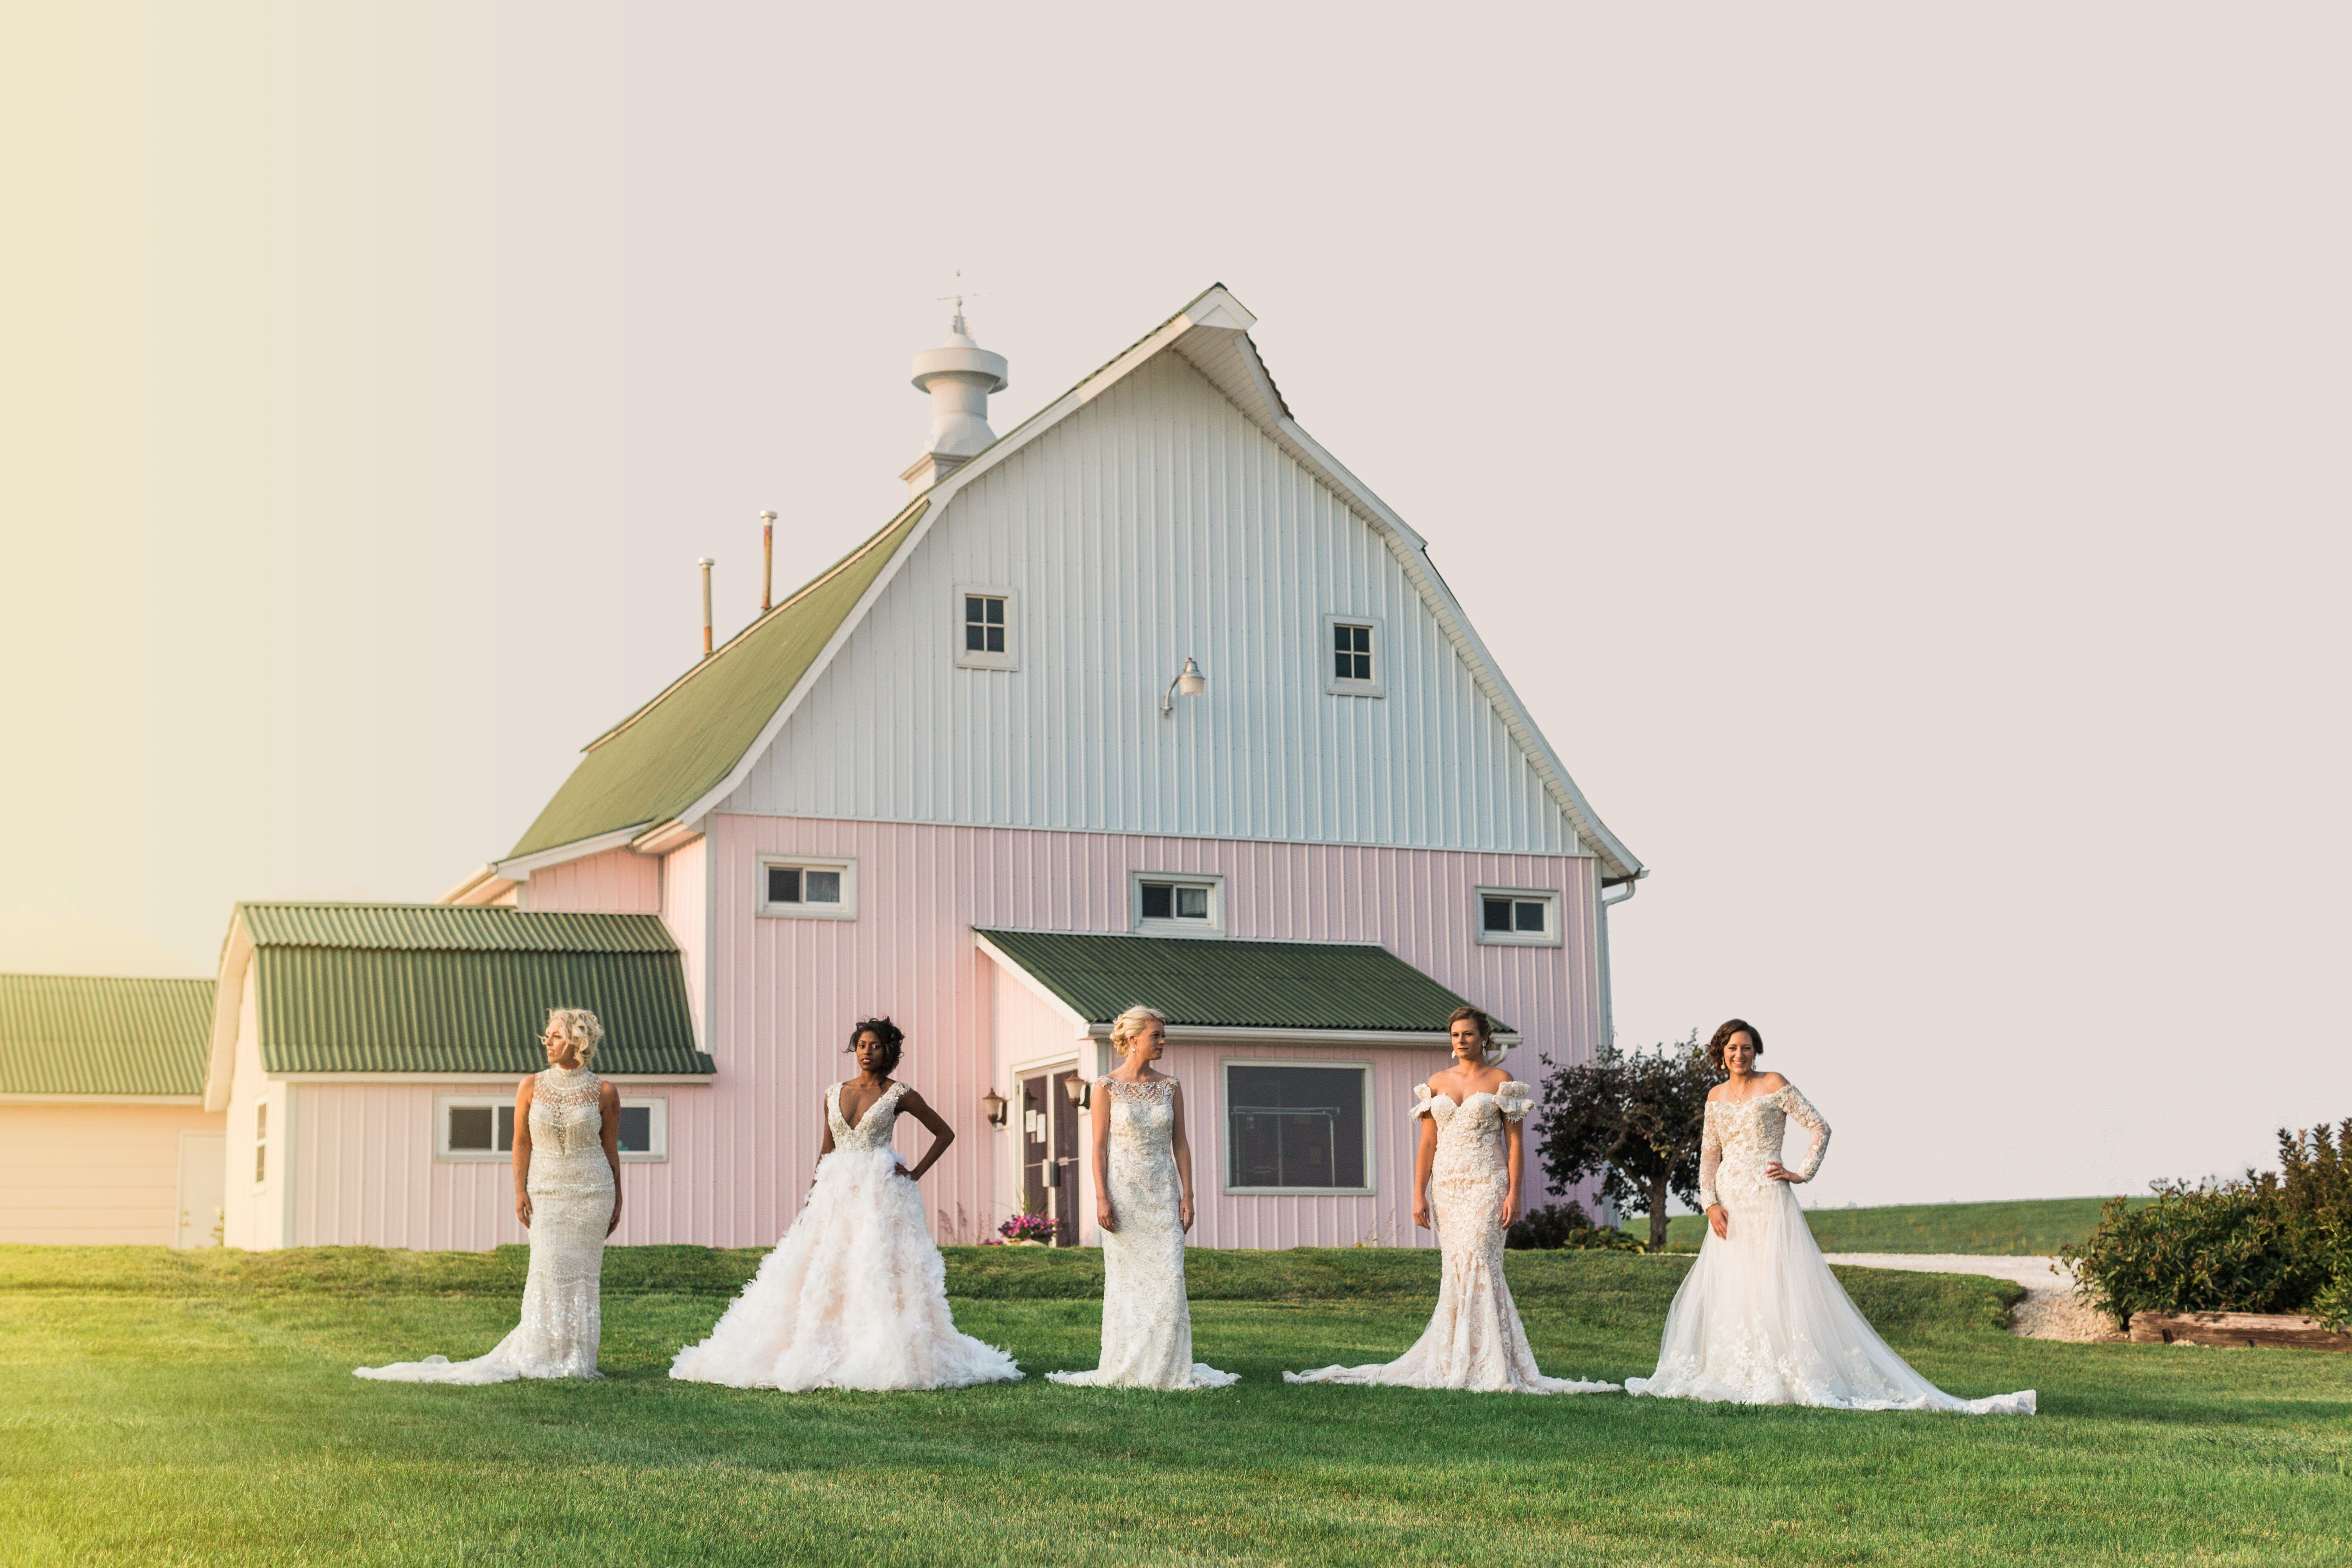 Bridal Salons in Des Moines, IA   The Knot